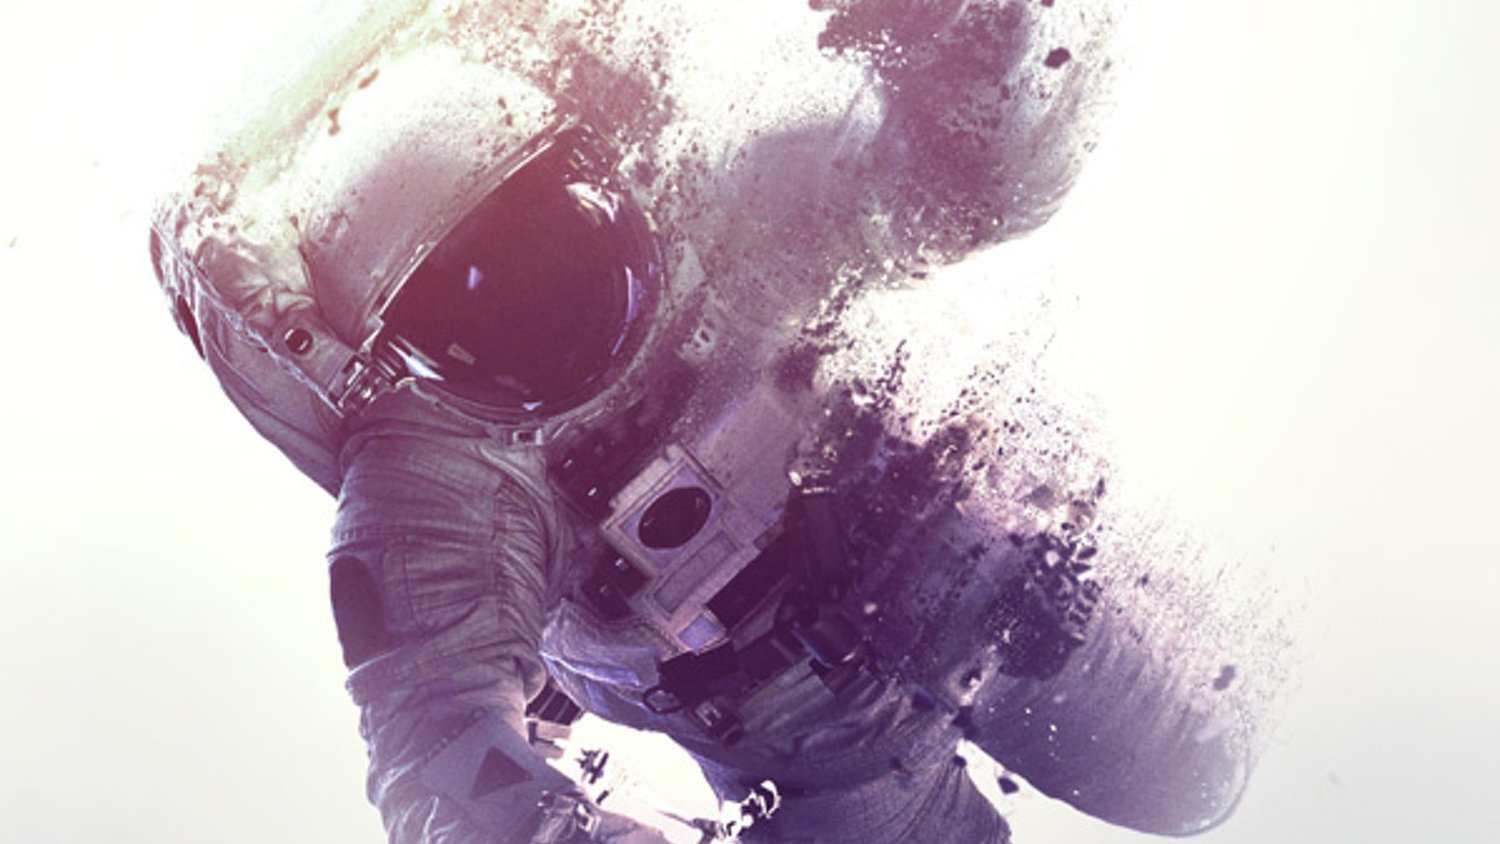 Great Trailer for FIGHT FOR SPACE - A Documentary About the Space Race